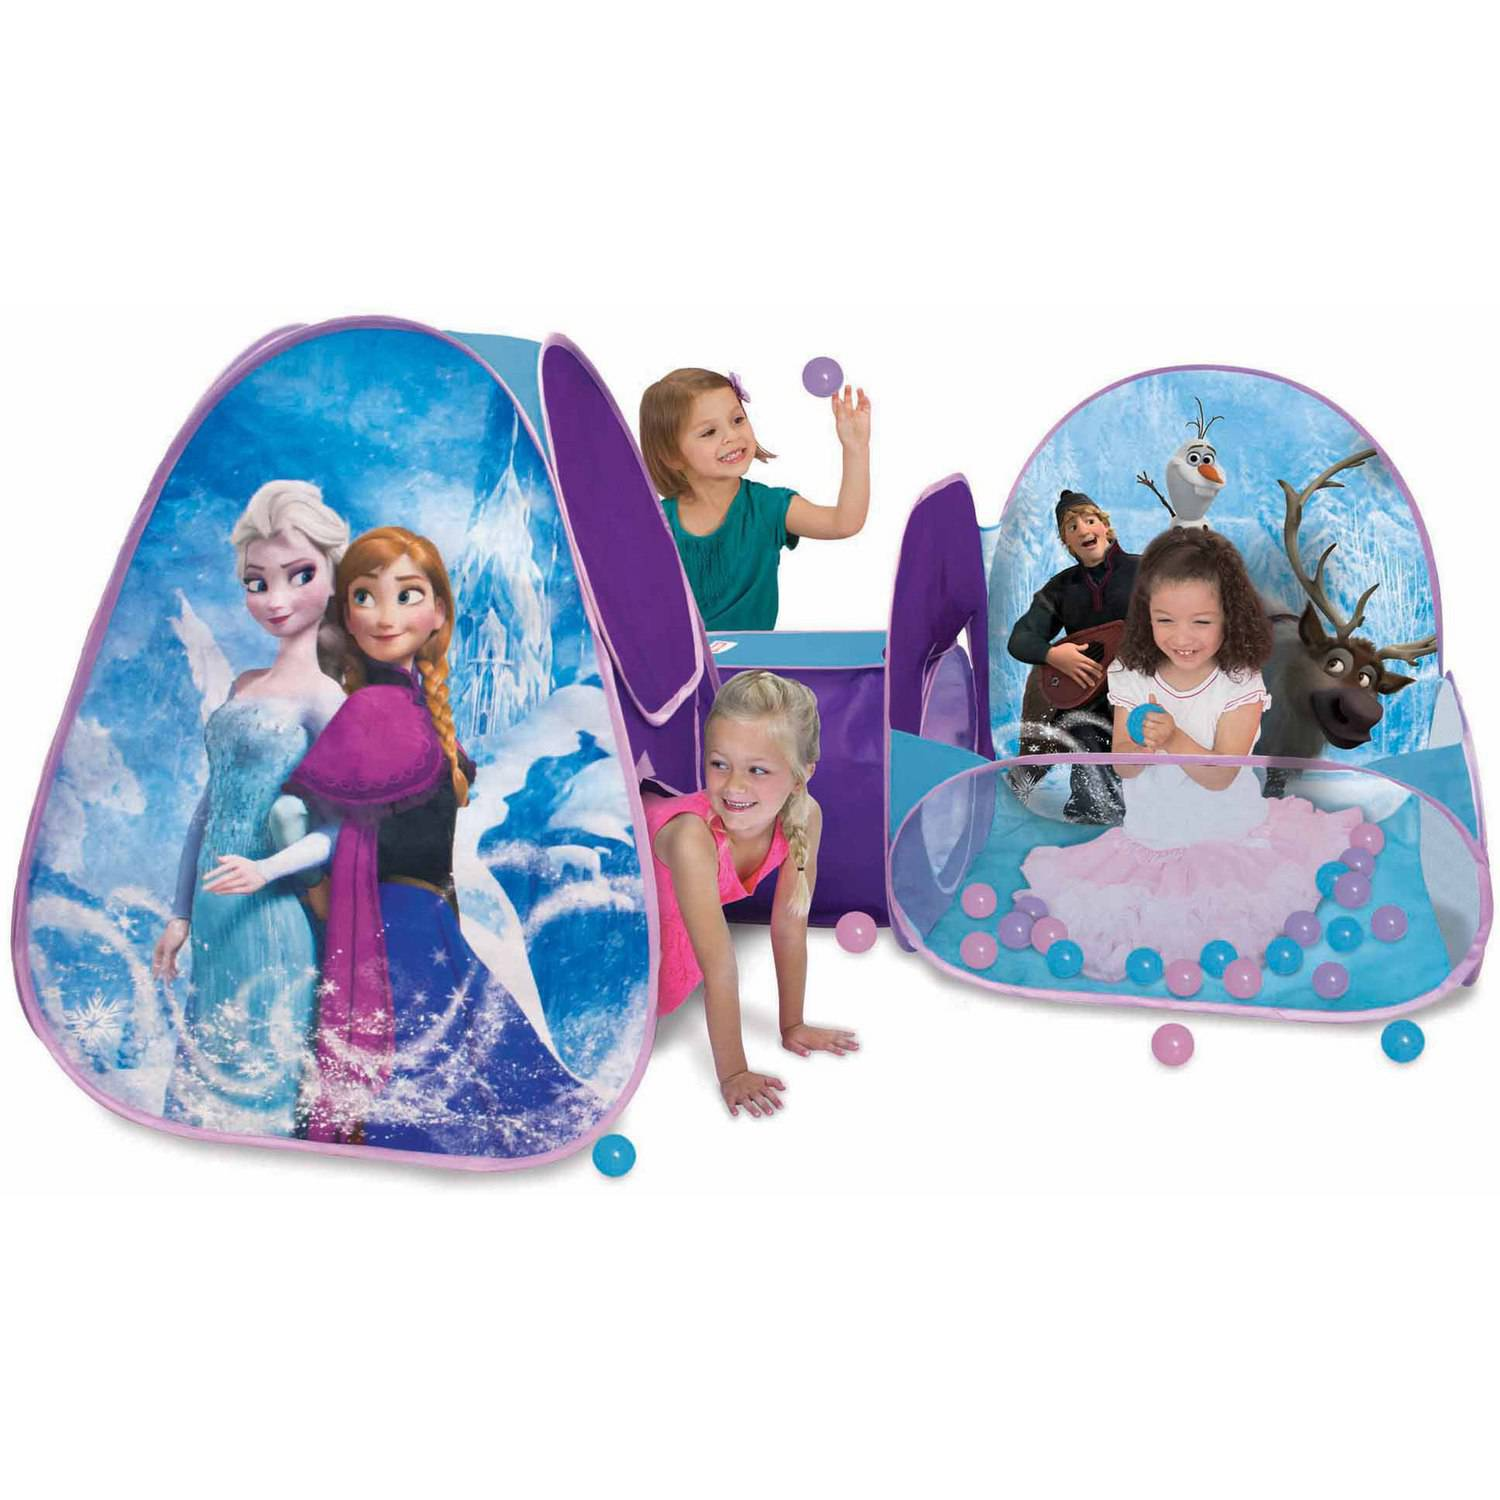 Playhut Disney Frozen Playzone